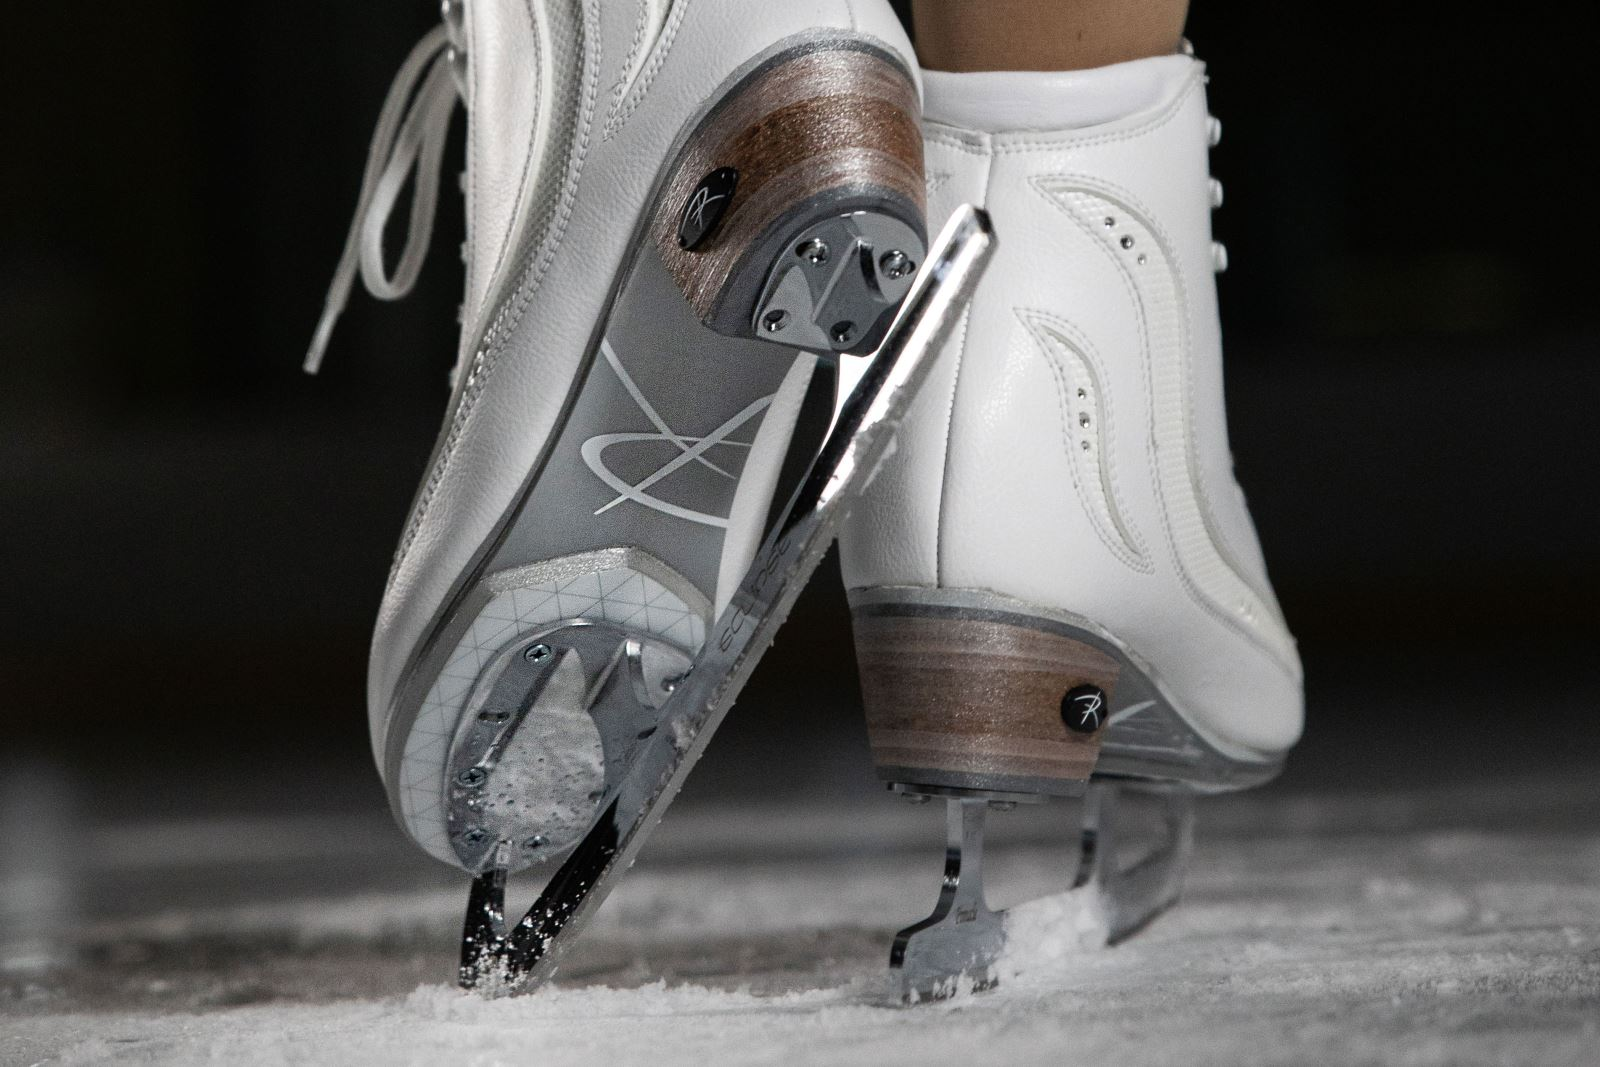 Hydro-Shield Outsole featured on the Elara from Riedell Skates